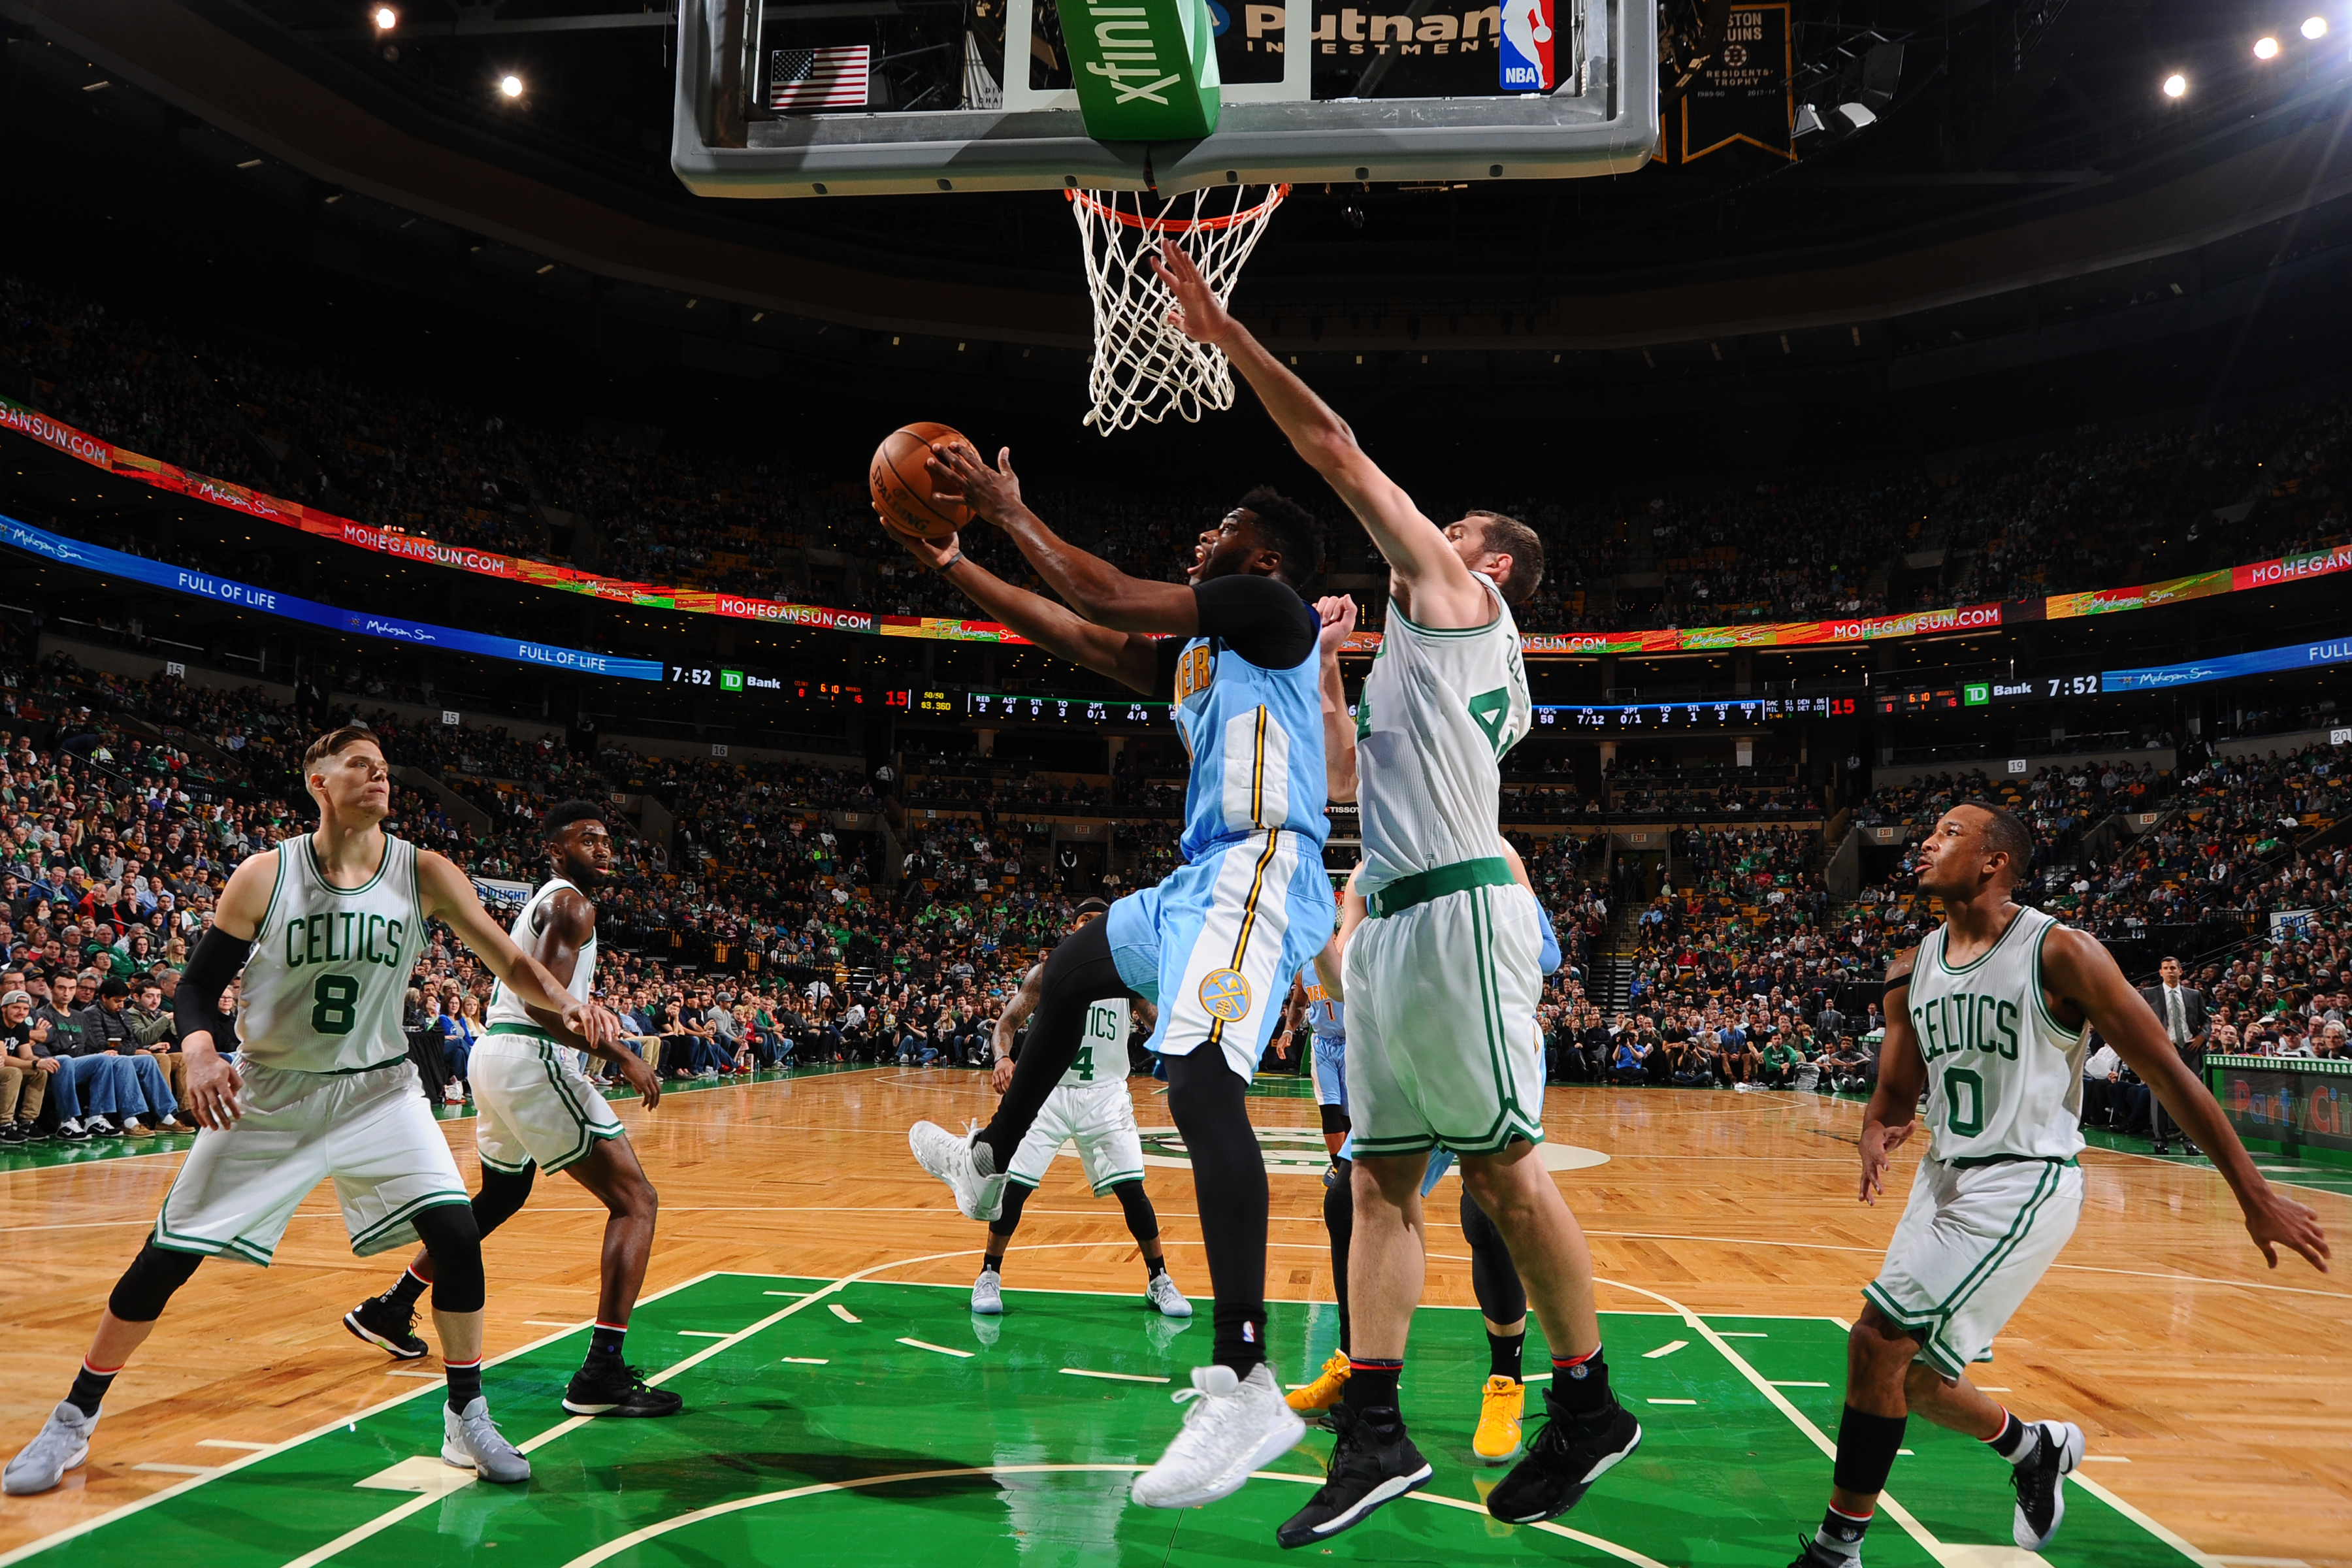 BOSTON, MA - NOVEMBER 6: Emmanuel Mudiay #0 of the Denver Nuggets shoots the ball against the Boston Celtics on November 6, 2016 at the TD Garden in Boston, Massachusetts. NOTE TO USER: User expressly acknowledges and agrees that, by downloading and or using this photograph, User is consenting to the terms and conditions of the Getty Images License Agreement. Mandatory Copyright Notice: Copyright 2016 NBAE (Photo by Brian Babineau/NBAE via Getty Images)